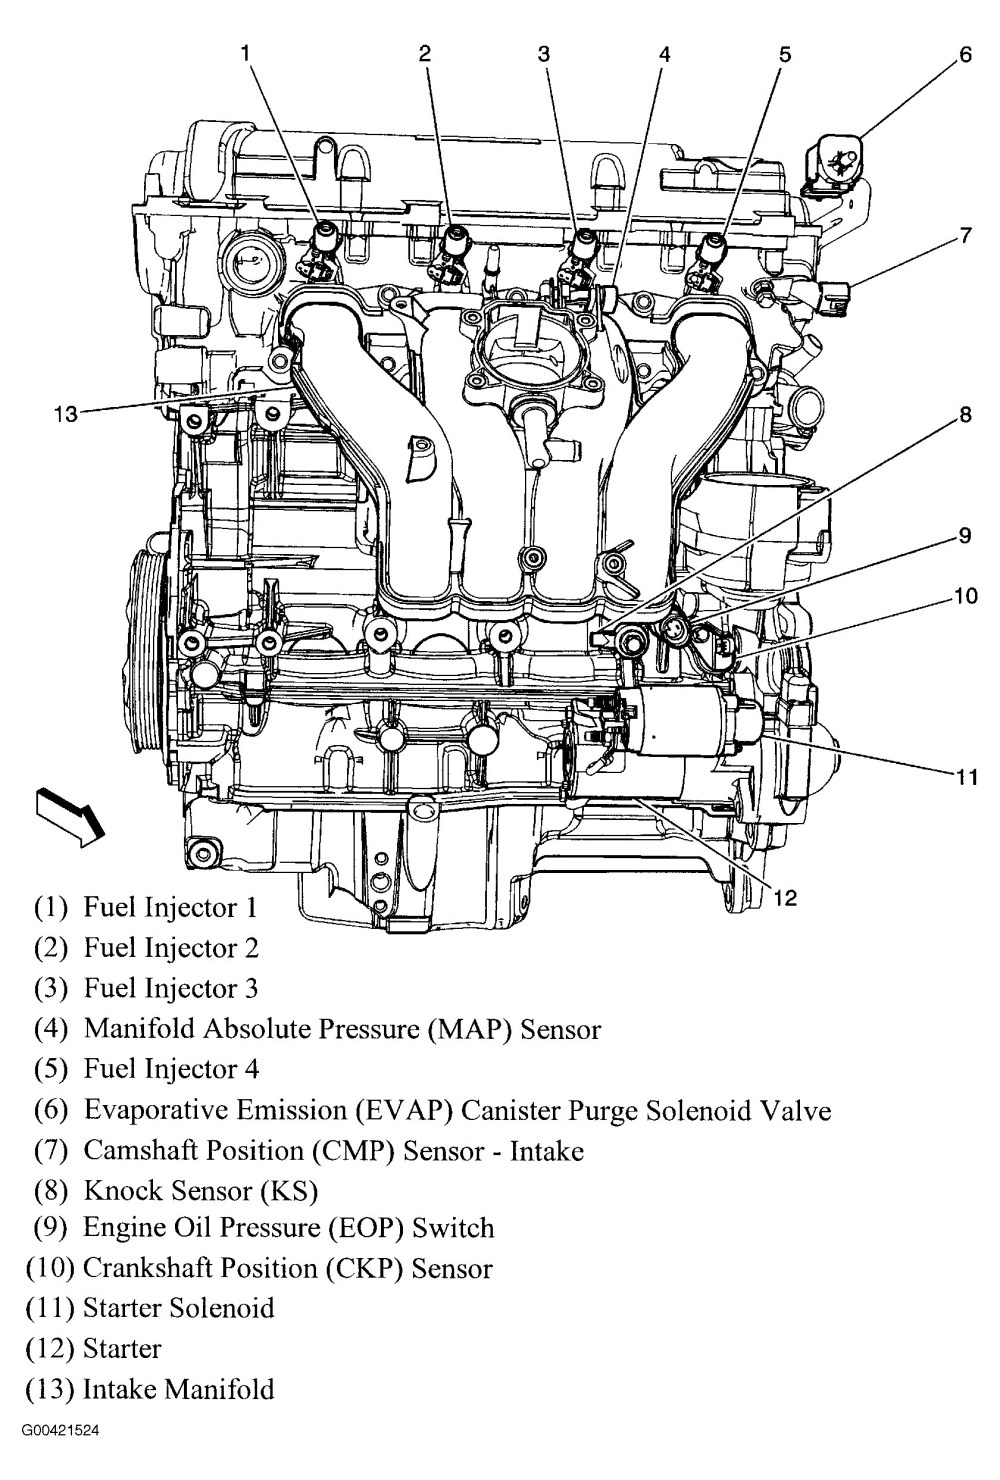 medium resolution of 4 8 silverado engine diagram wiring library rh 5 skriptoase de car engine parts diagram v6 engine diagram